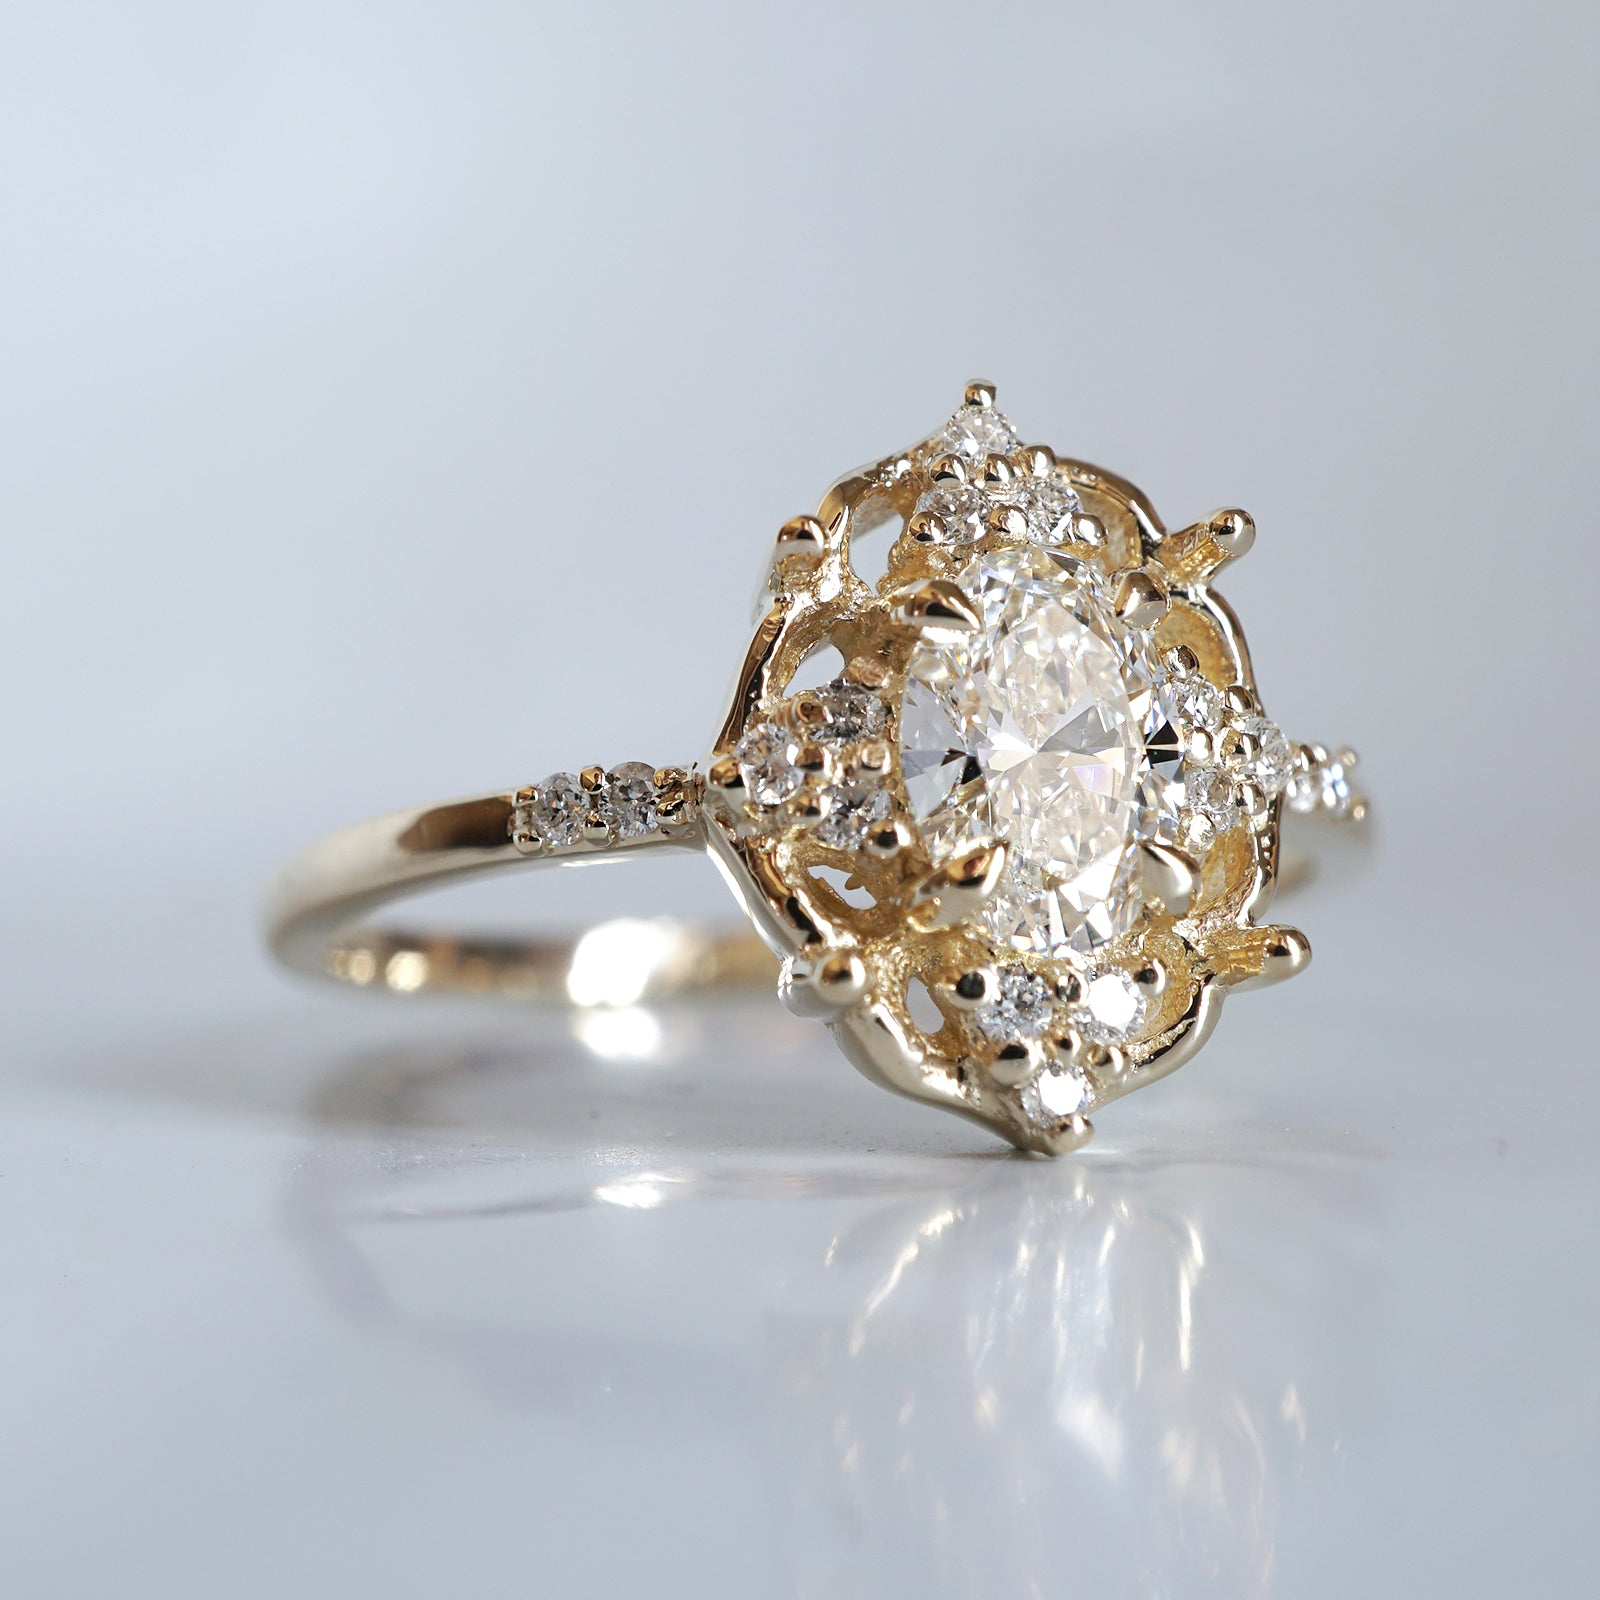 Moonstone Rosie Diamond Ring - Tippy Taste Jewelry